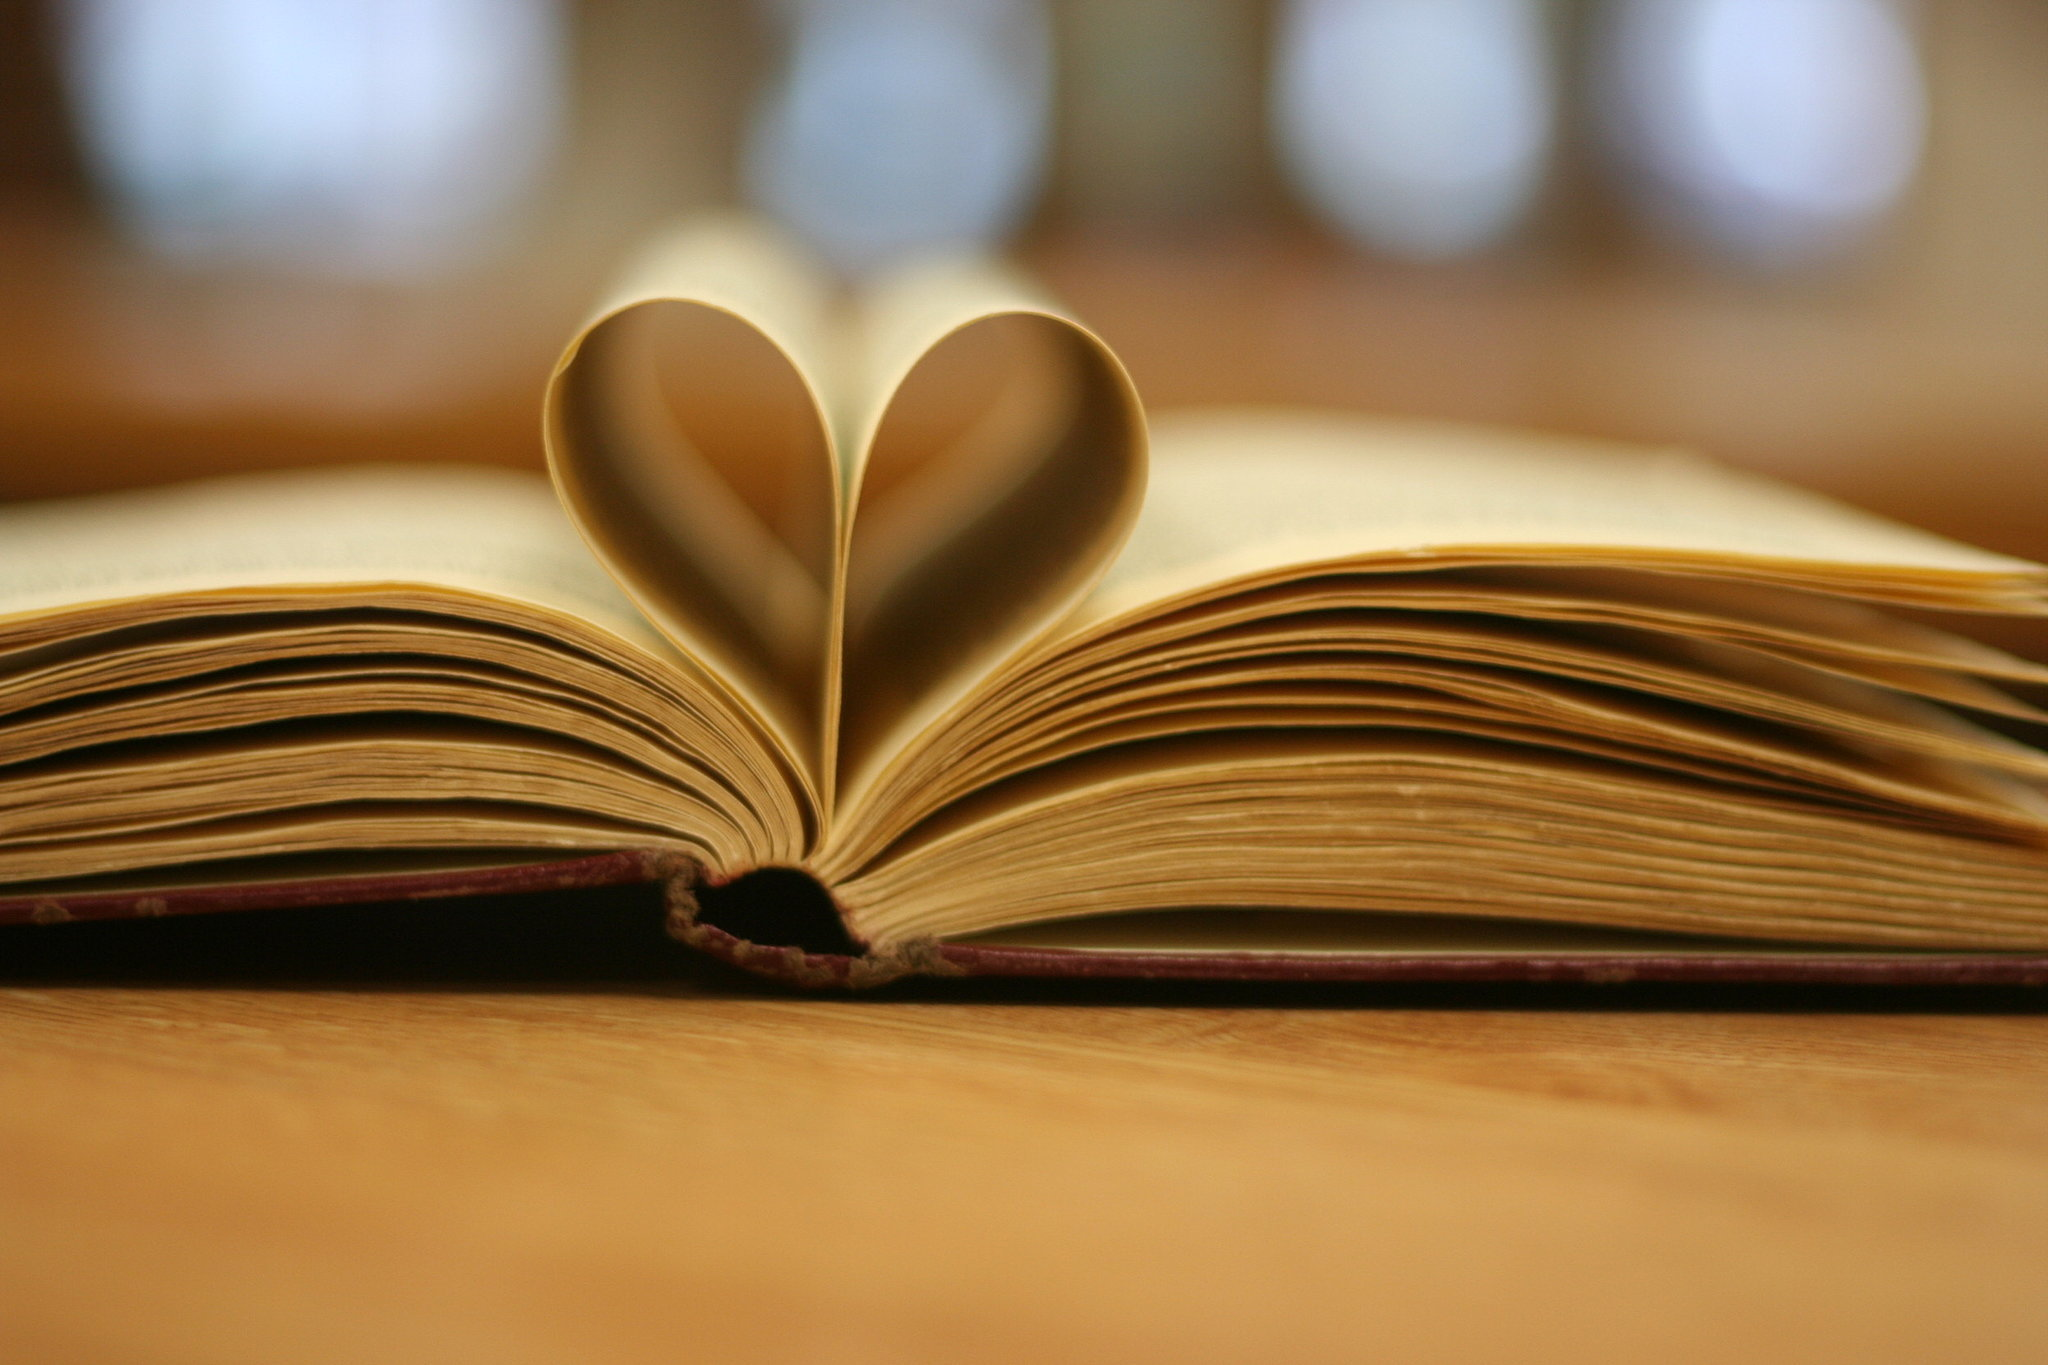 Give them a collector's copy of their favorite book with a sweet note inside from you.